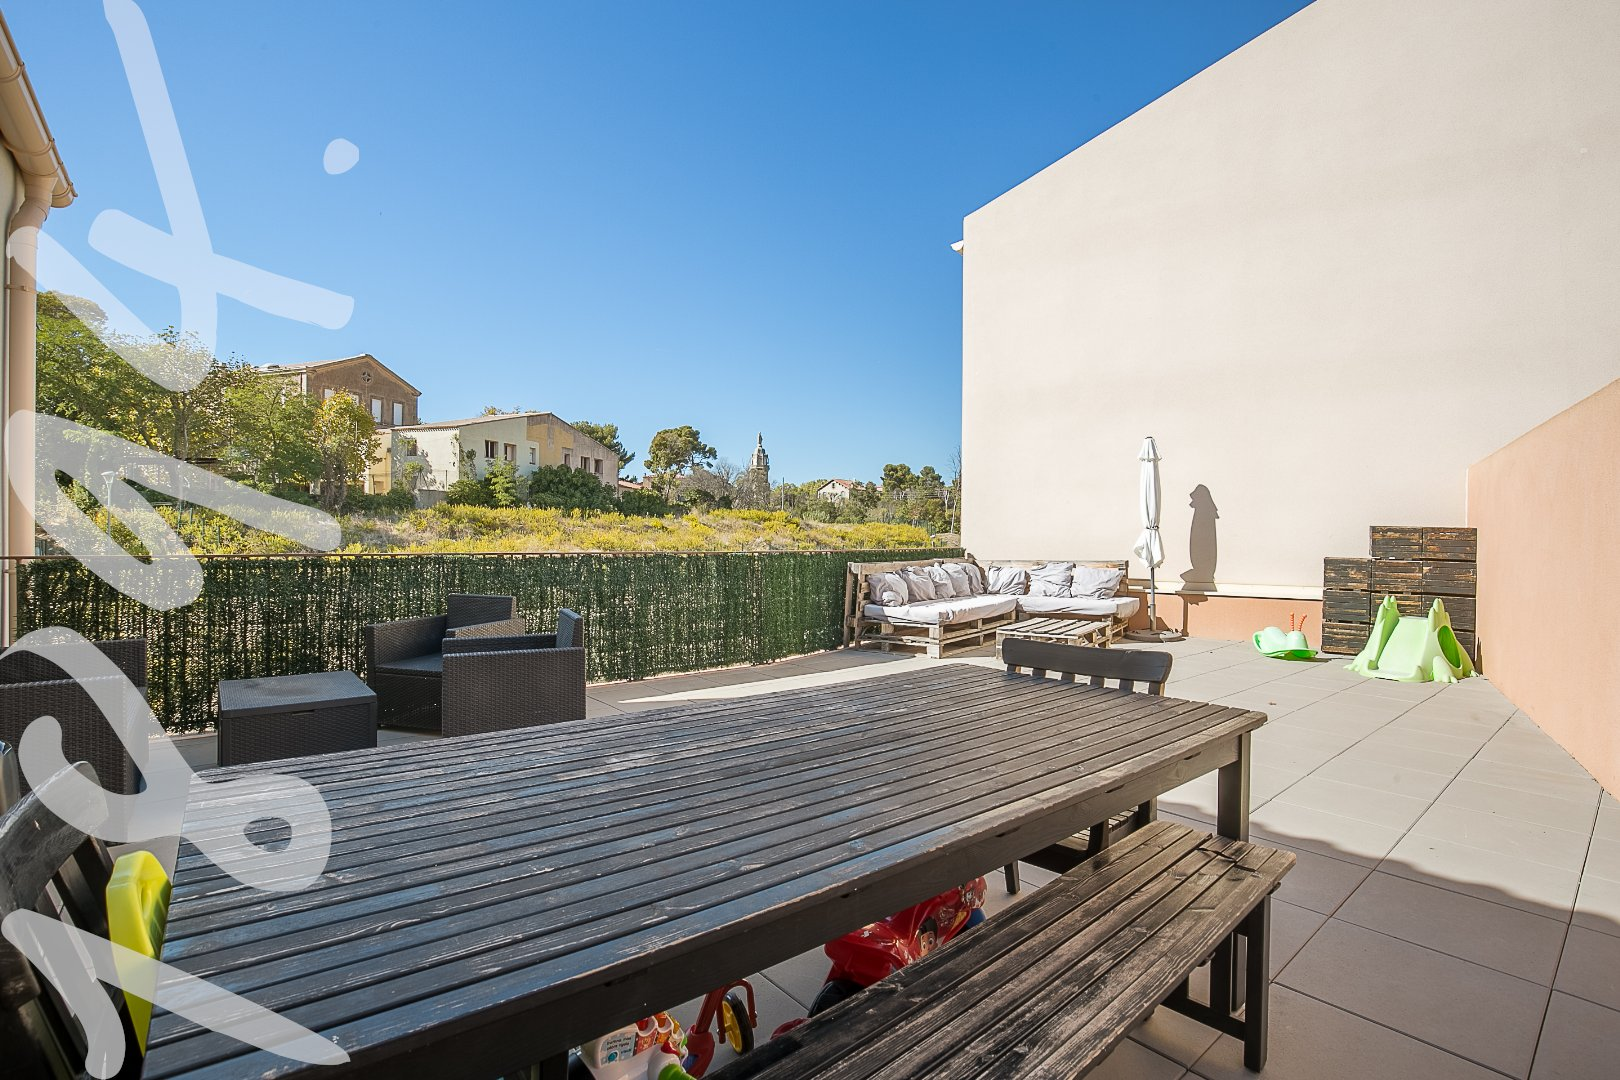 APPARTEMENT T3 66M2 TERRASSE 68M2 GARAGE 30M2 13014 SAINTE MARTHE